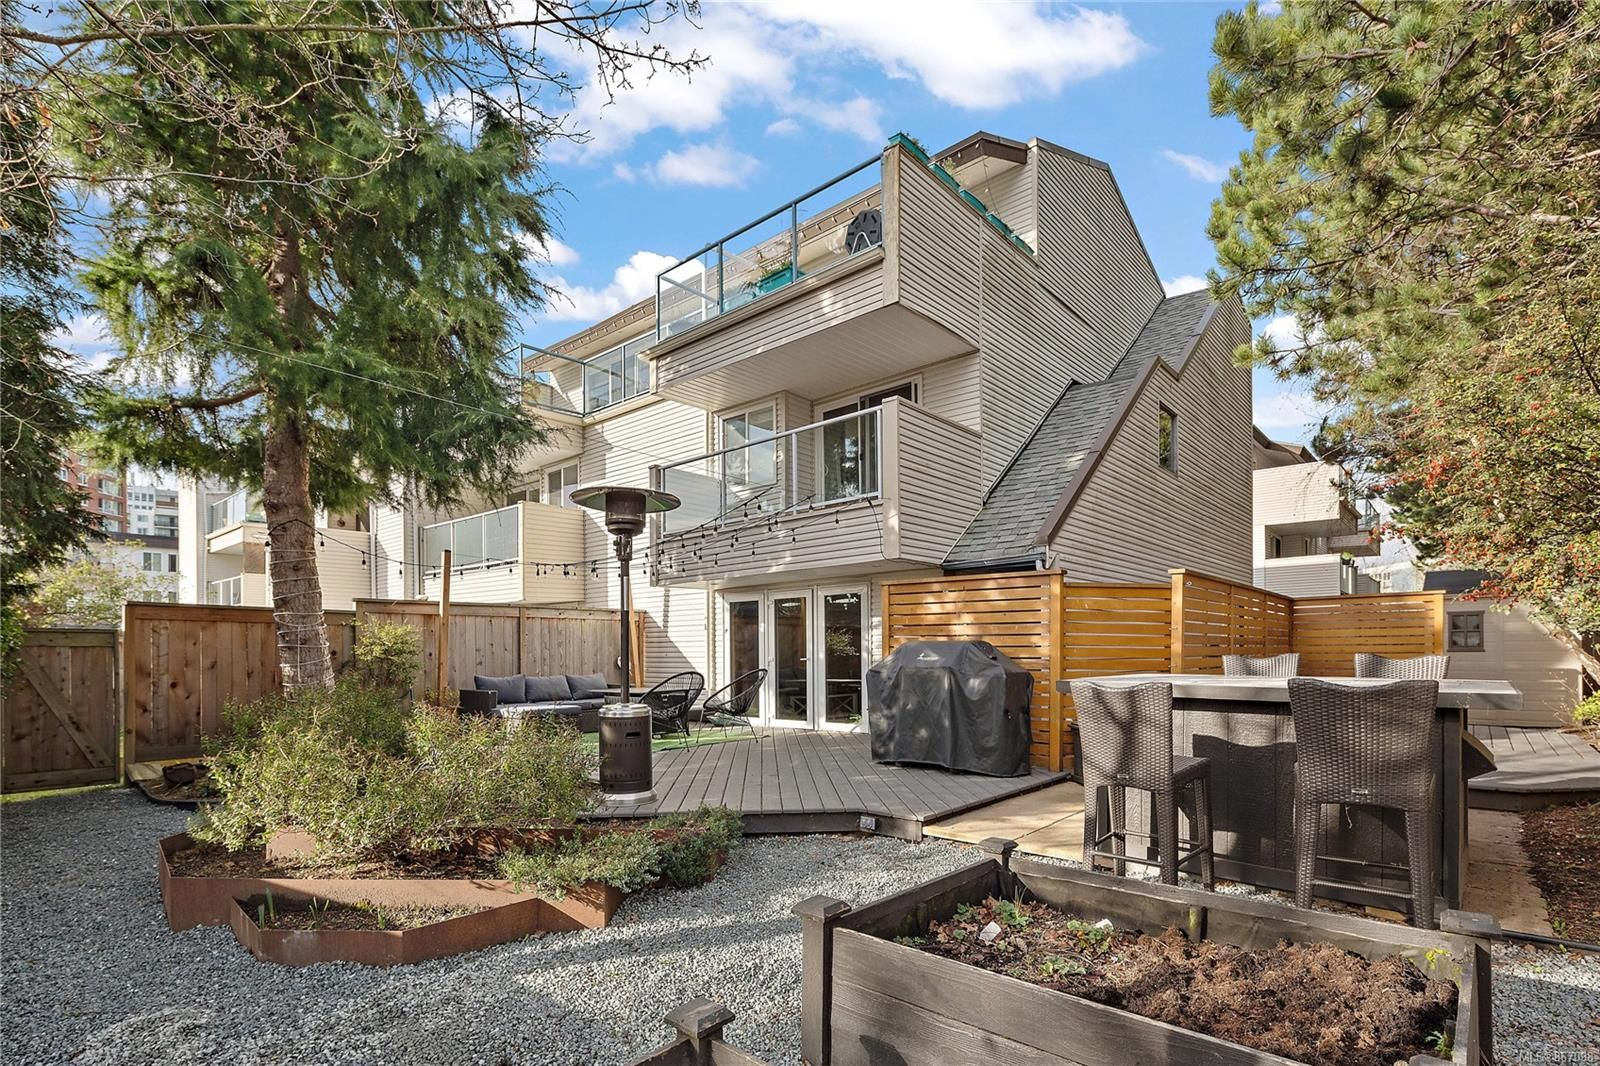 Main Photo: 7 331 Robert St in : VW Victoria West Row/Townhouse for sale (Victoria West)  : MLS®# 867098